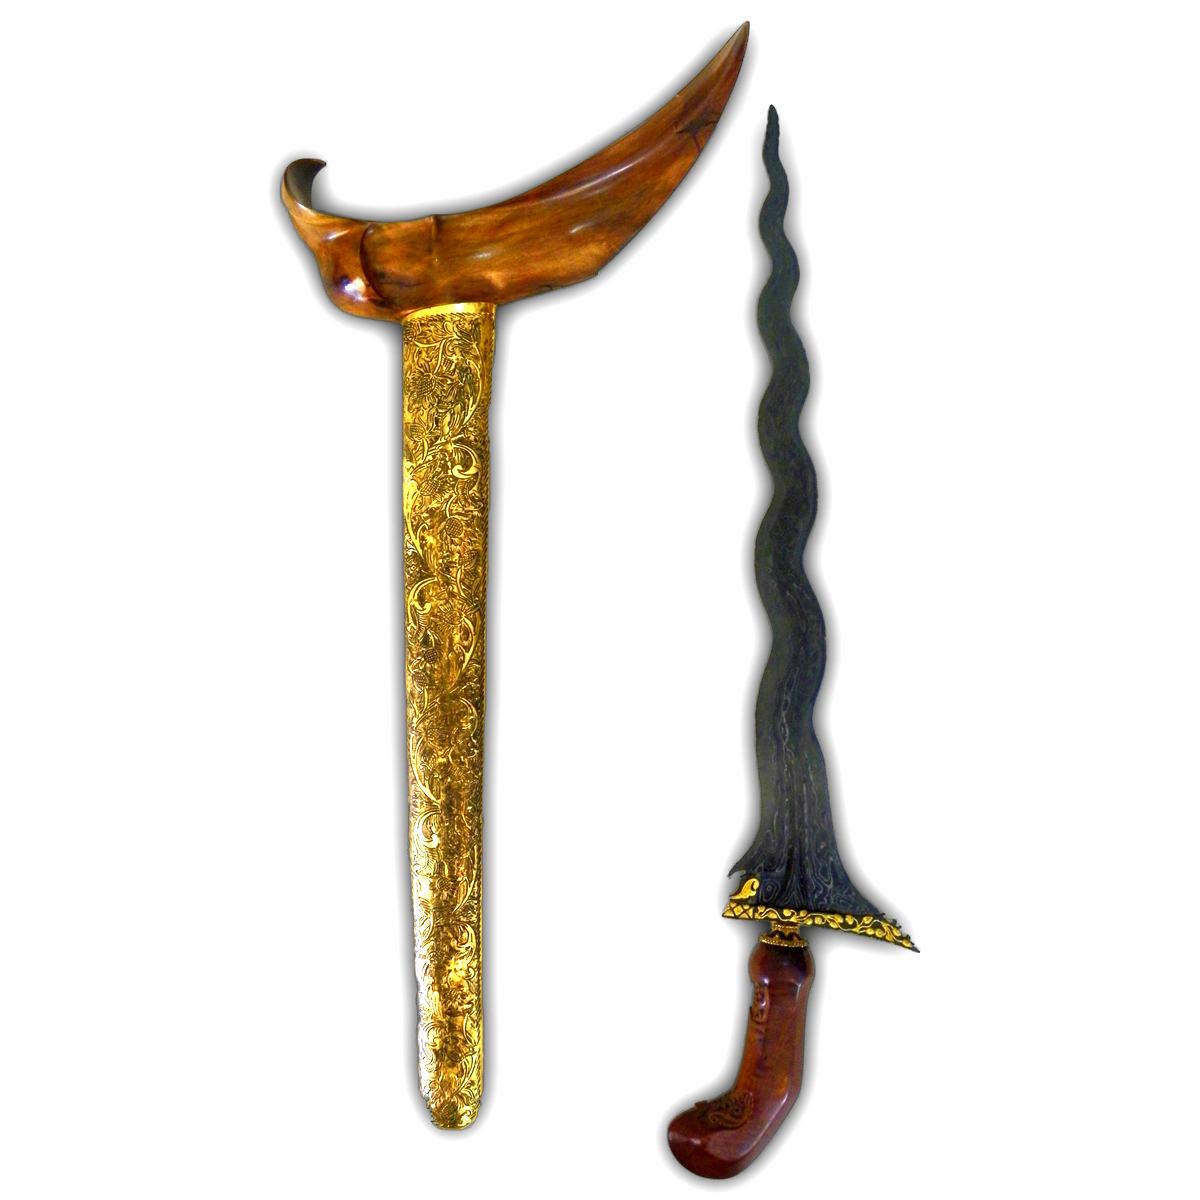 keris sengkelat mataram sultan agung with gold plated kinatah ancient brass sheath and teak wooden hilt indo magic